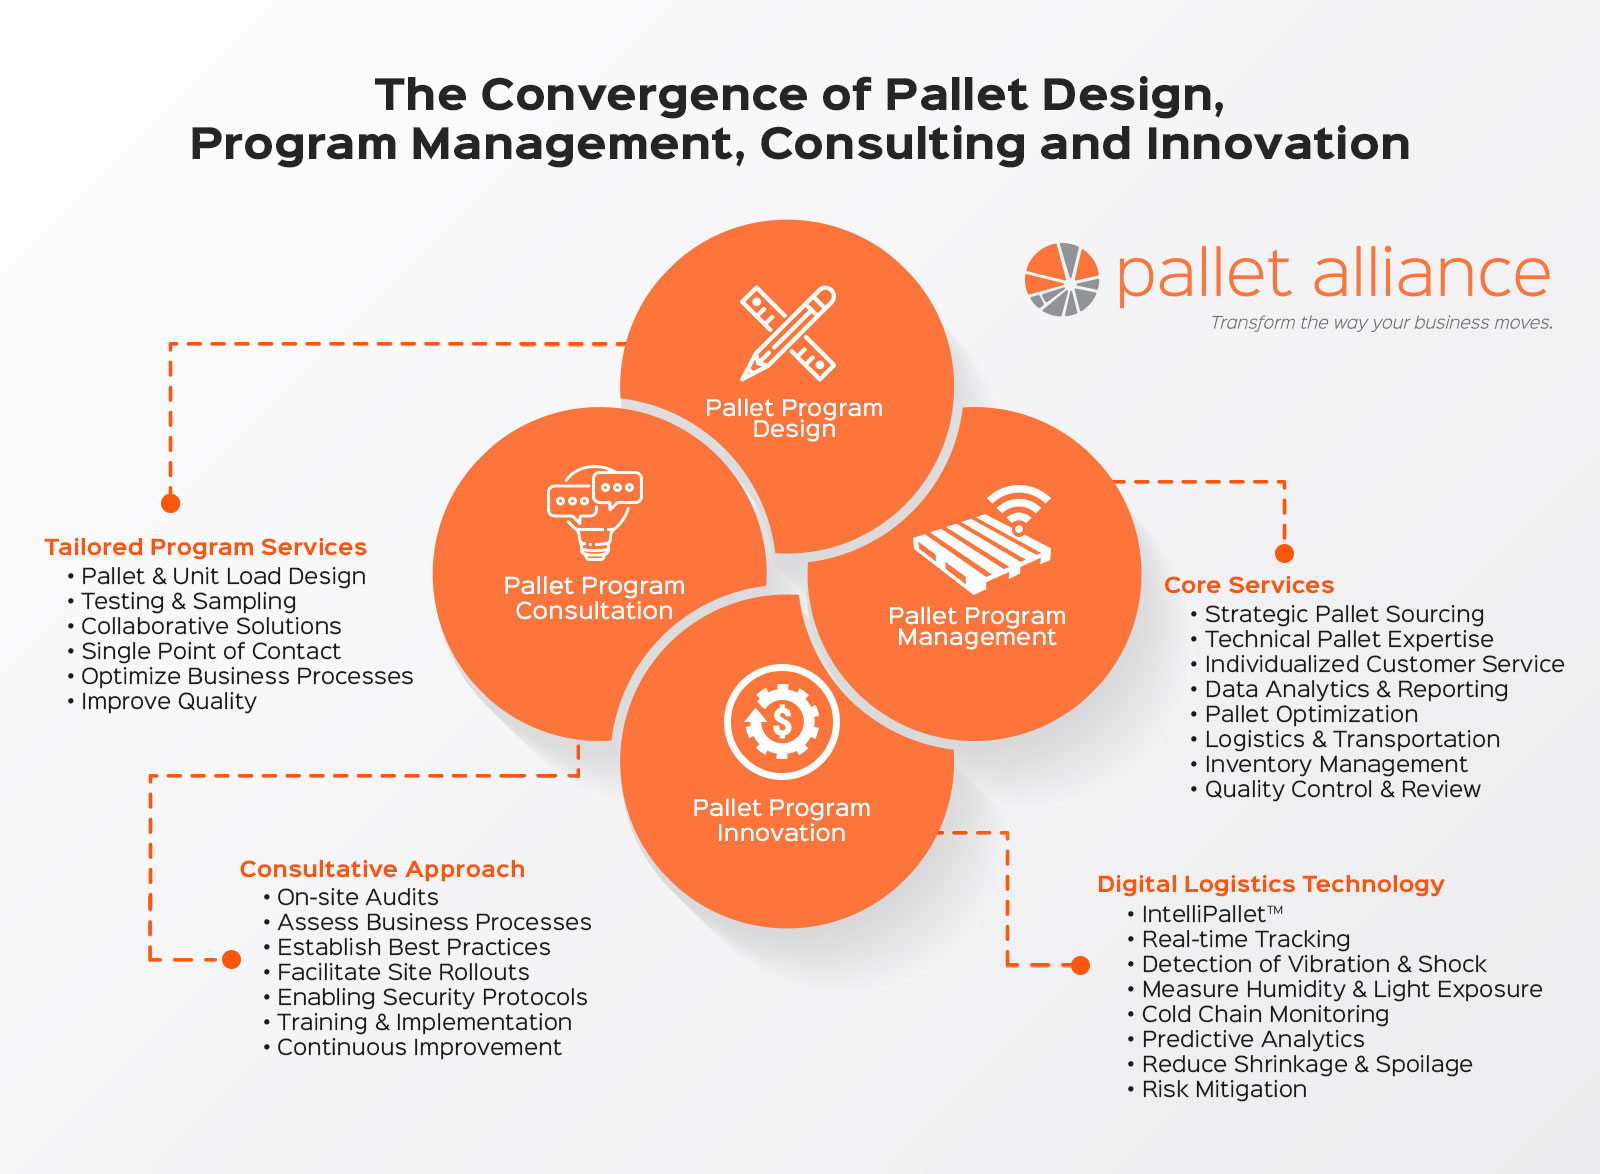 The Convergence of Pallet Design